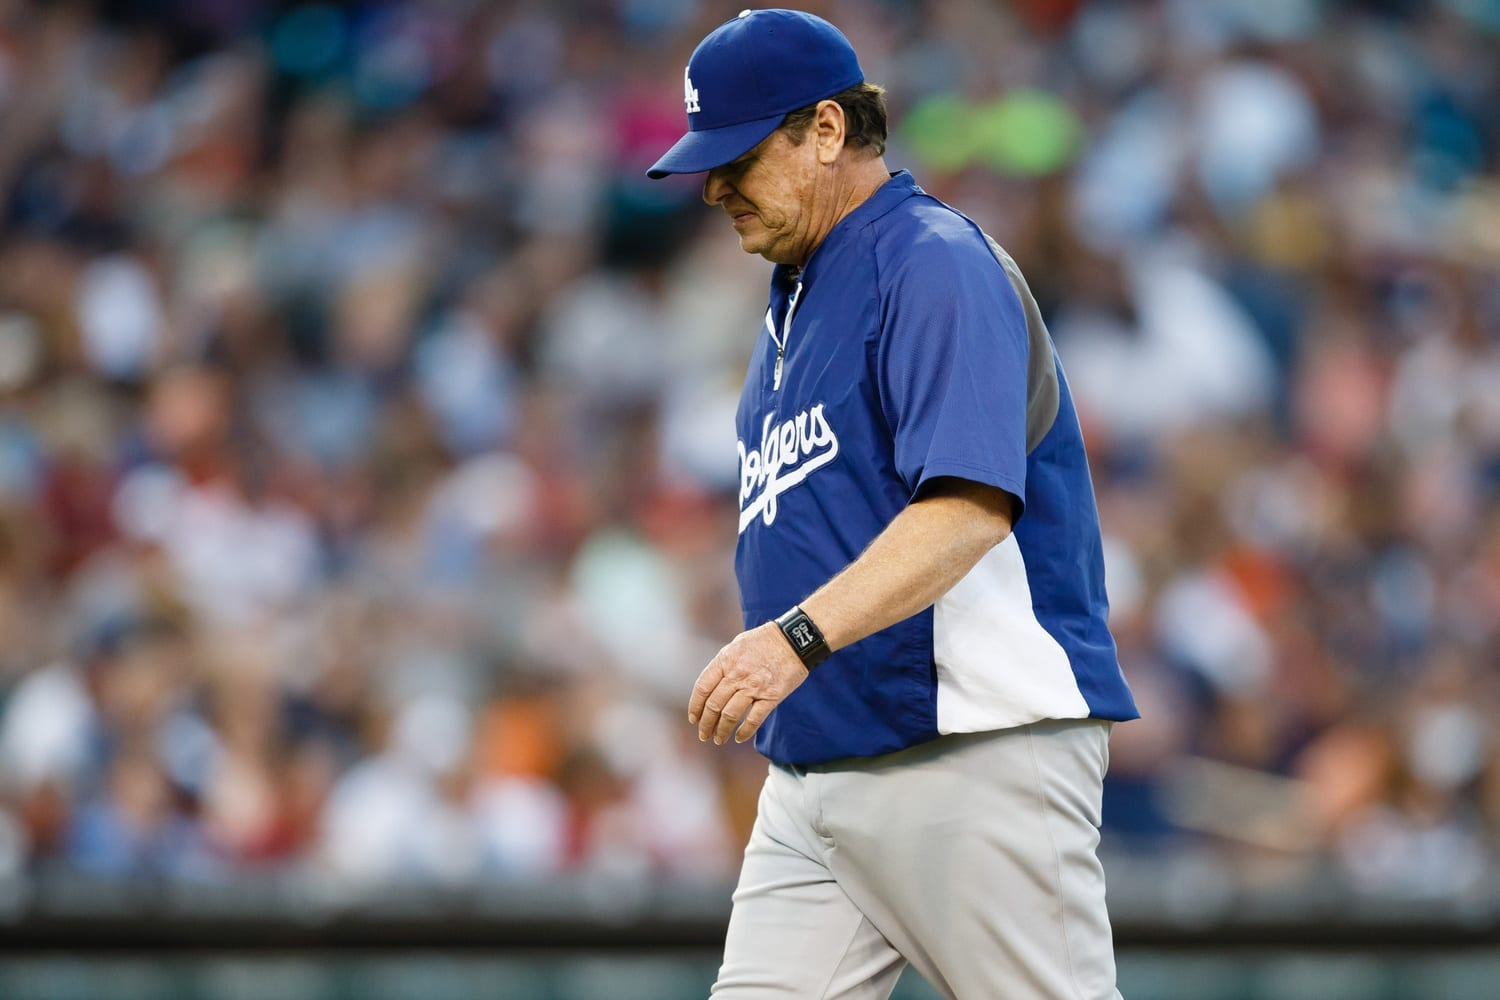 Dodgers News: Friedman Says Honeycutt's And Coaches' Contracts Not Settled